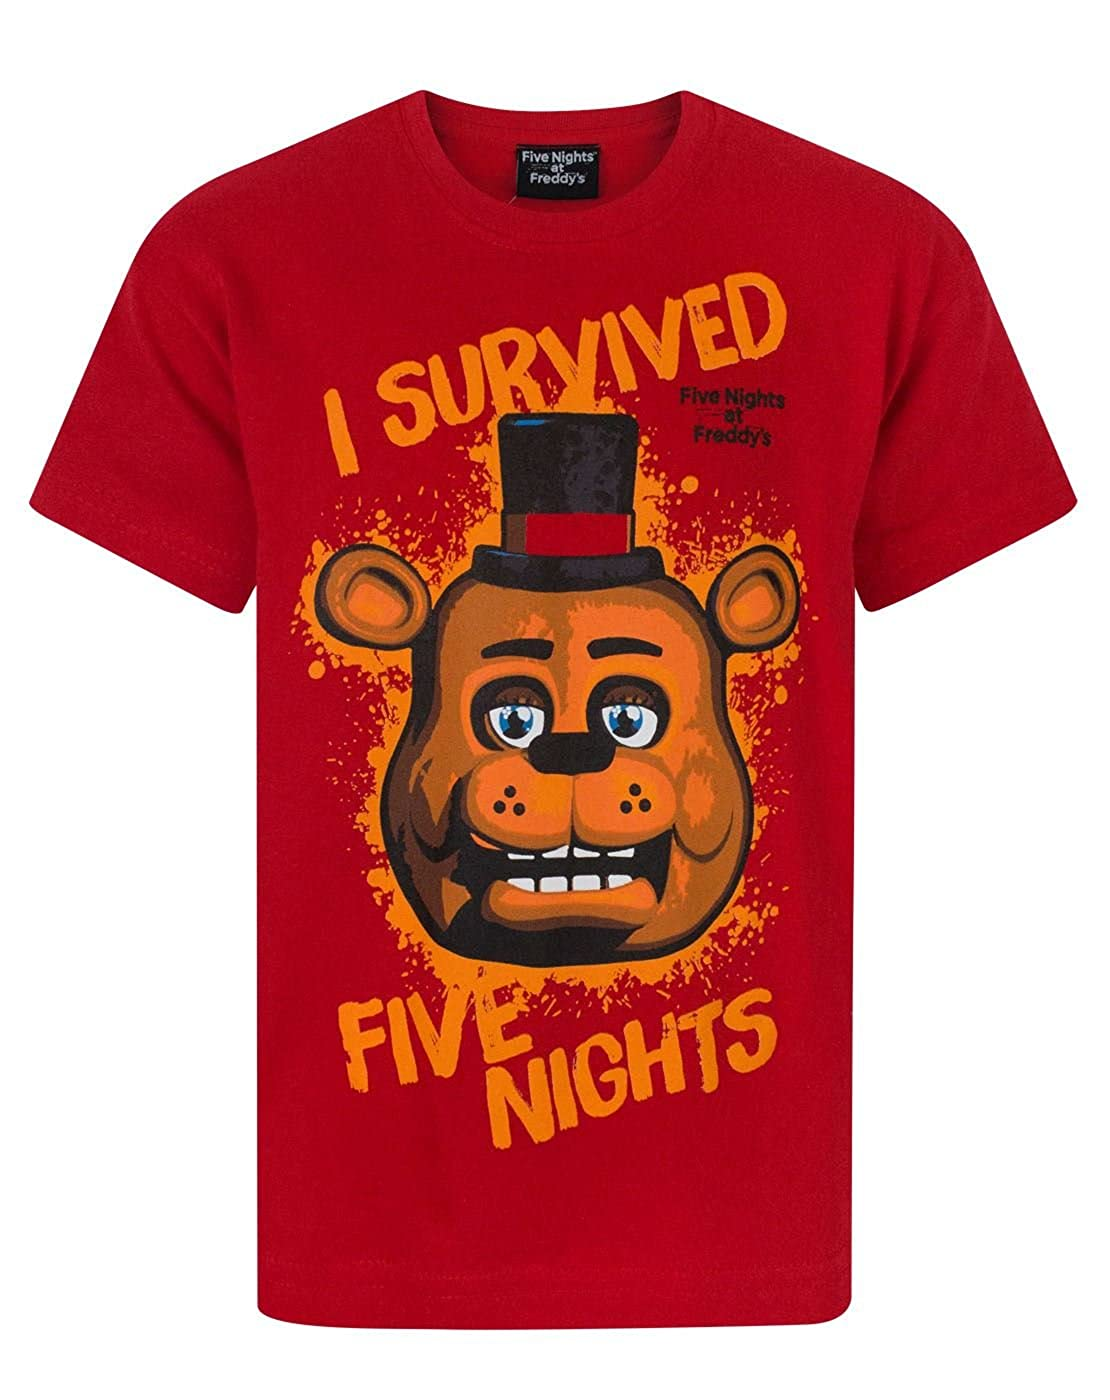 FIVE NIGHTS AT FREDDYS I Survived Boys T-Shirt